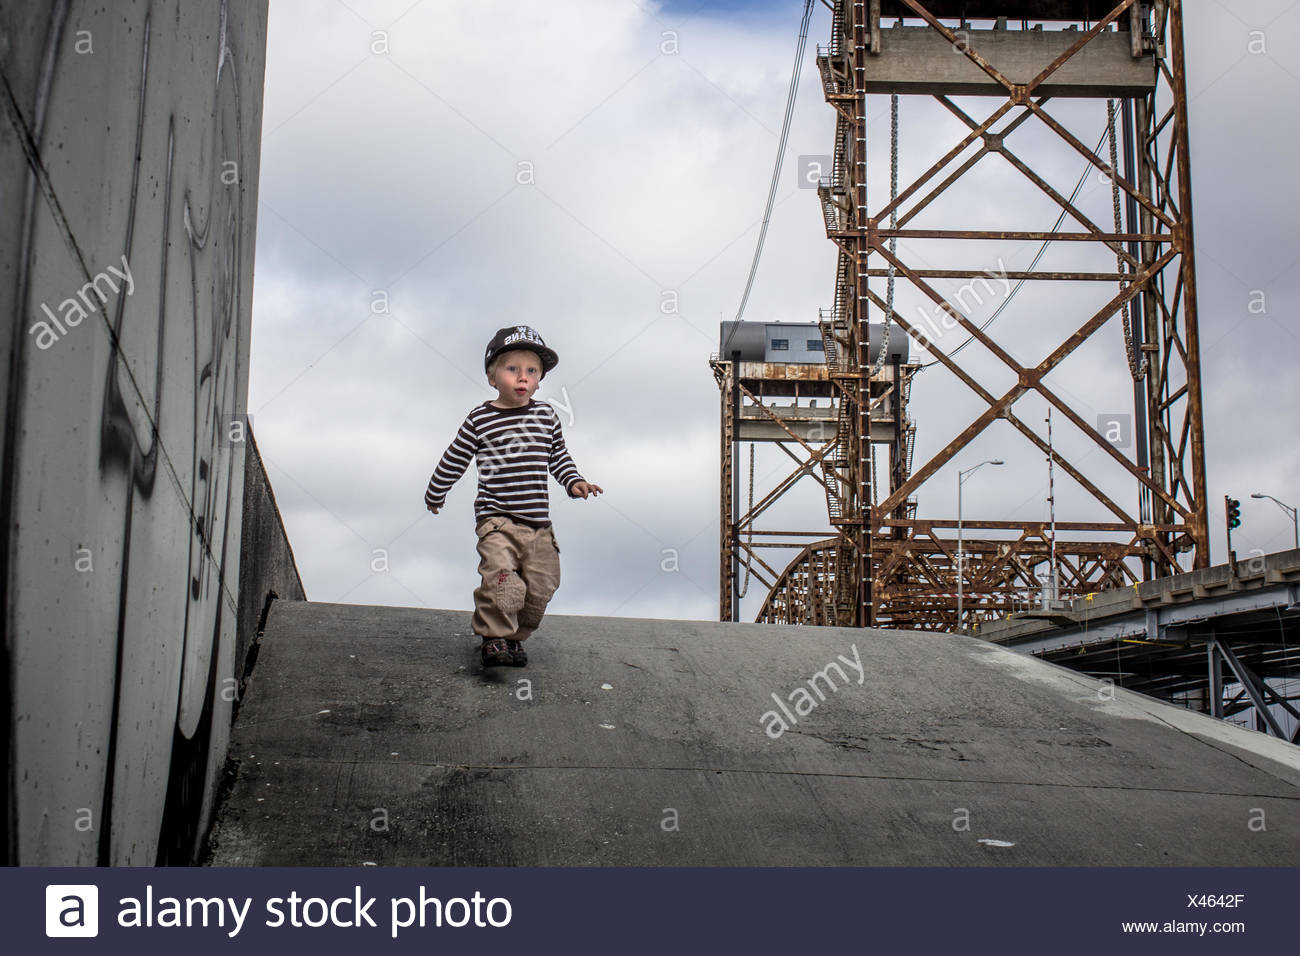 USA, Louisiana, New Orleans, Boy (2-3) running down from levee in Lower ninth ward, Claiborne Bridge in the background - Stock Image